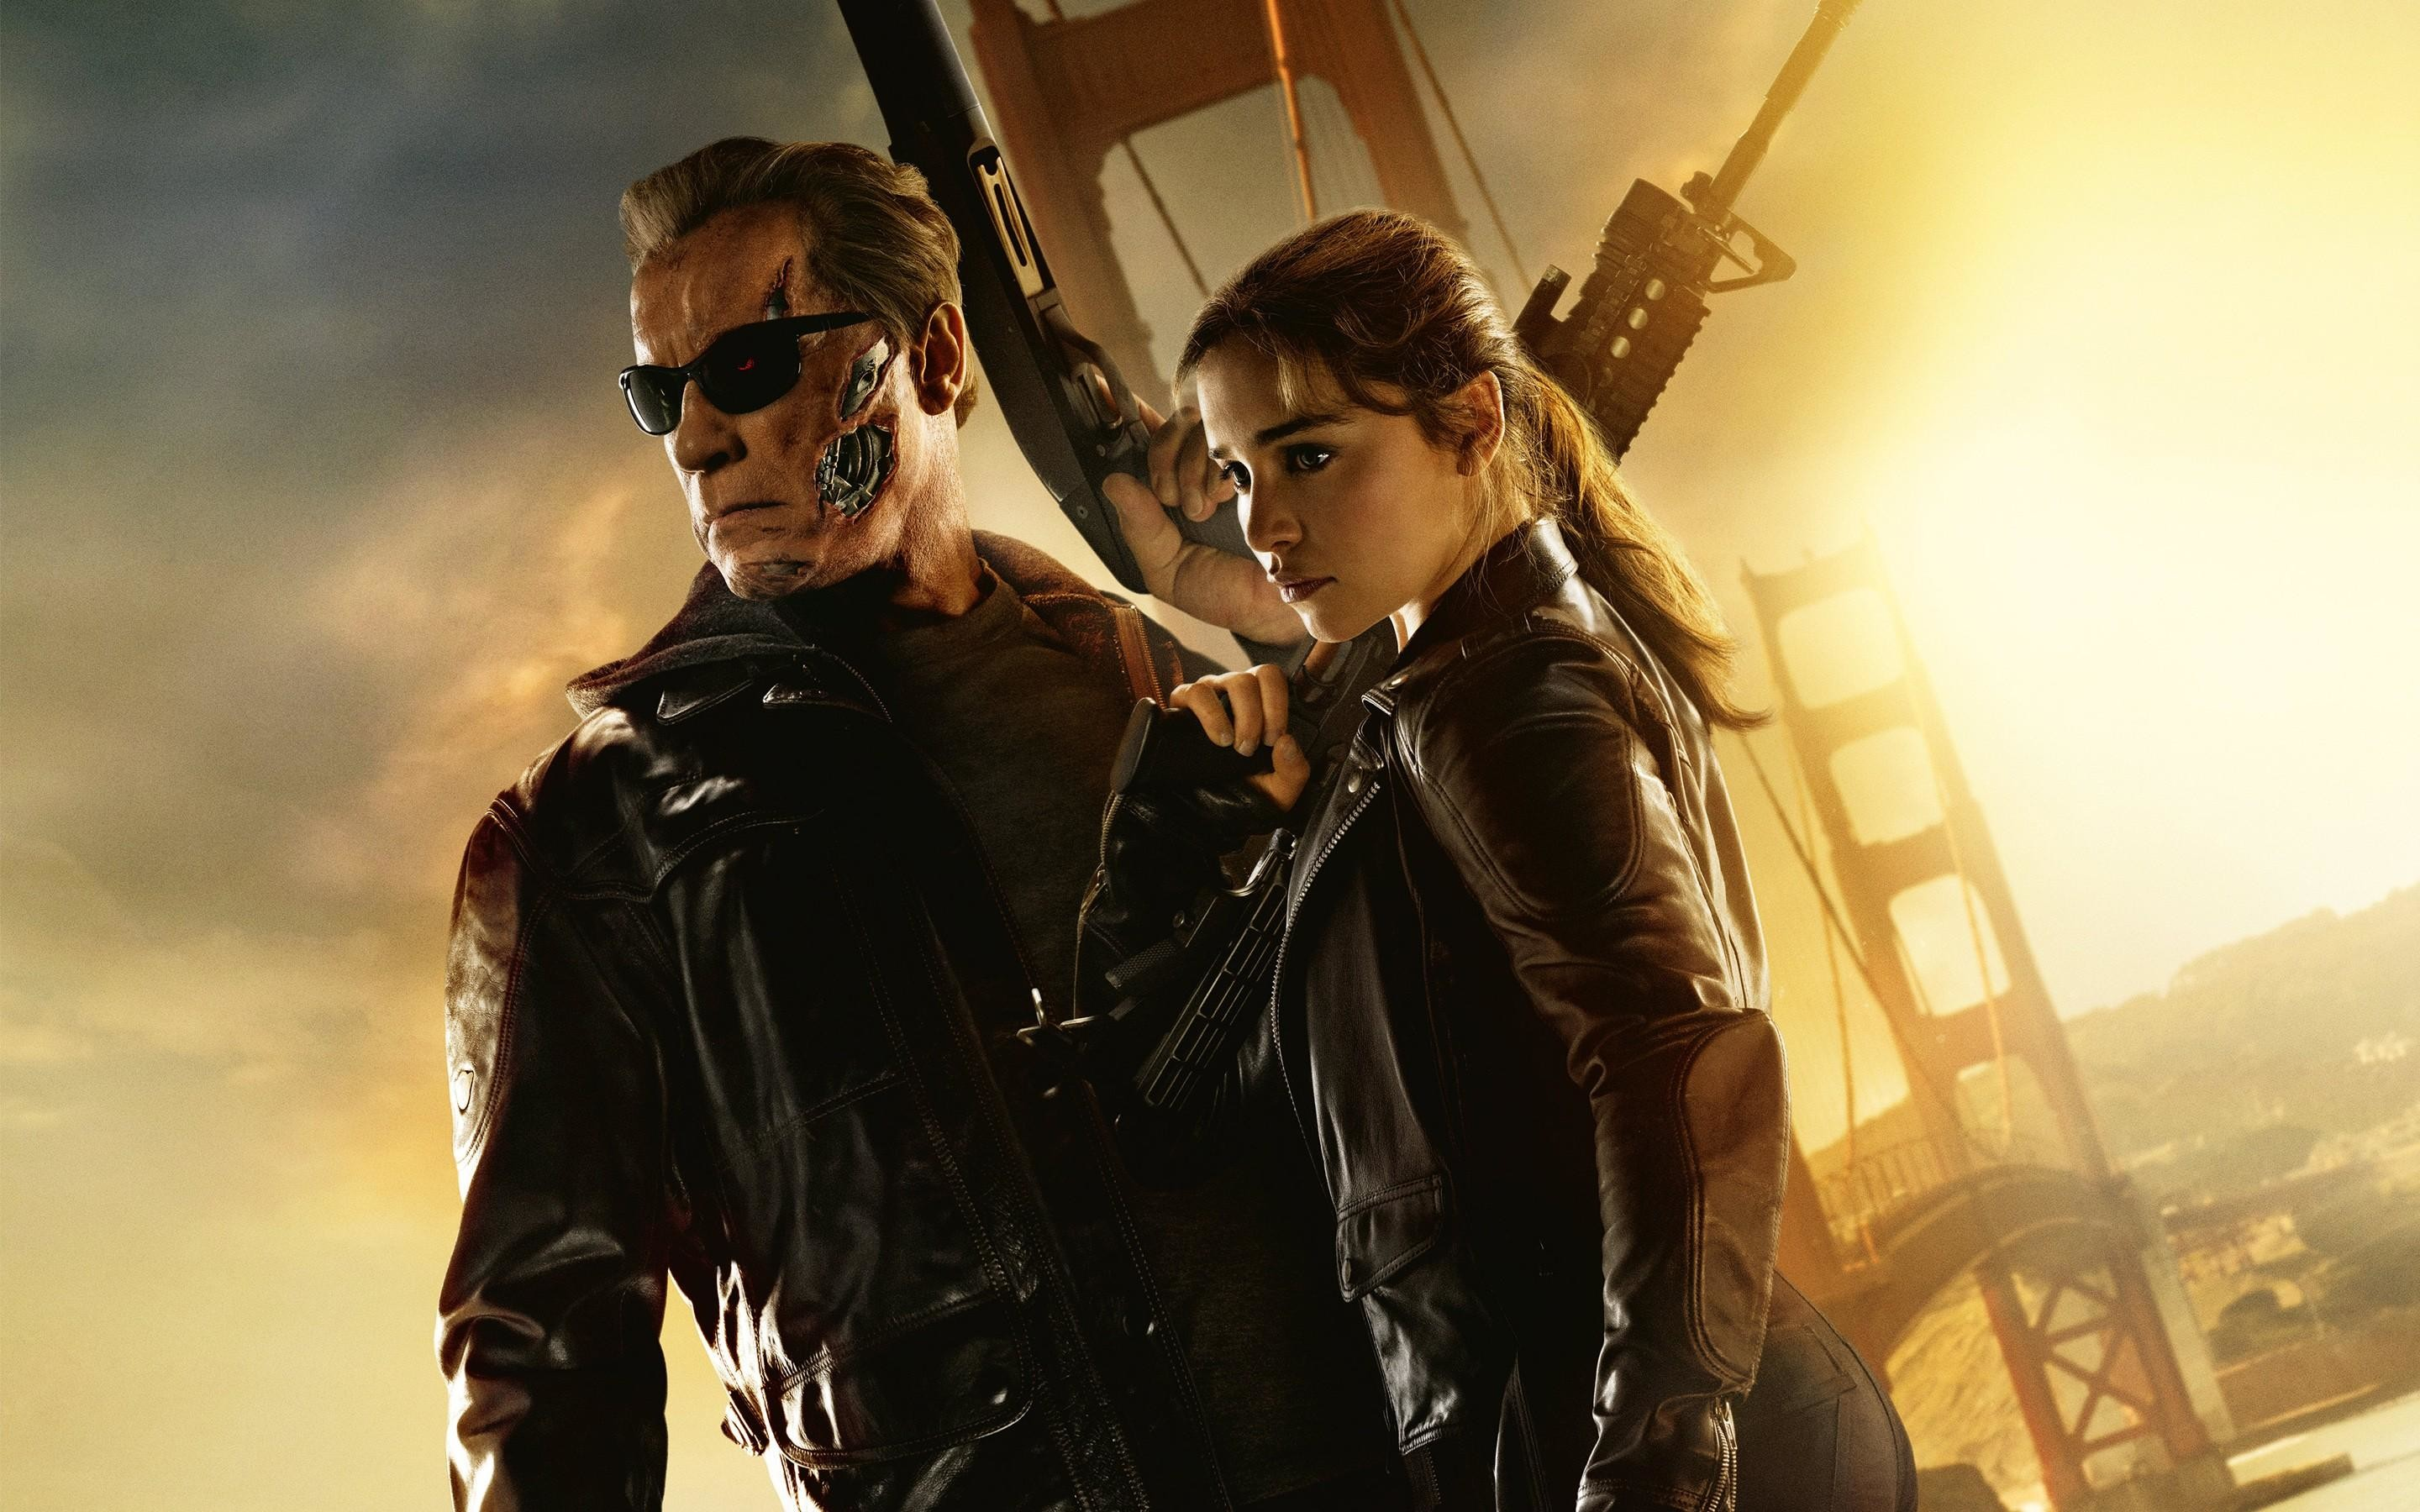 2880x1800 1024x576 Terminator Genisys Wallpaper 1920x1080 by sachso74 on DeviantArt